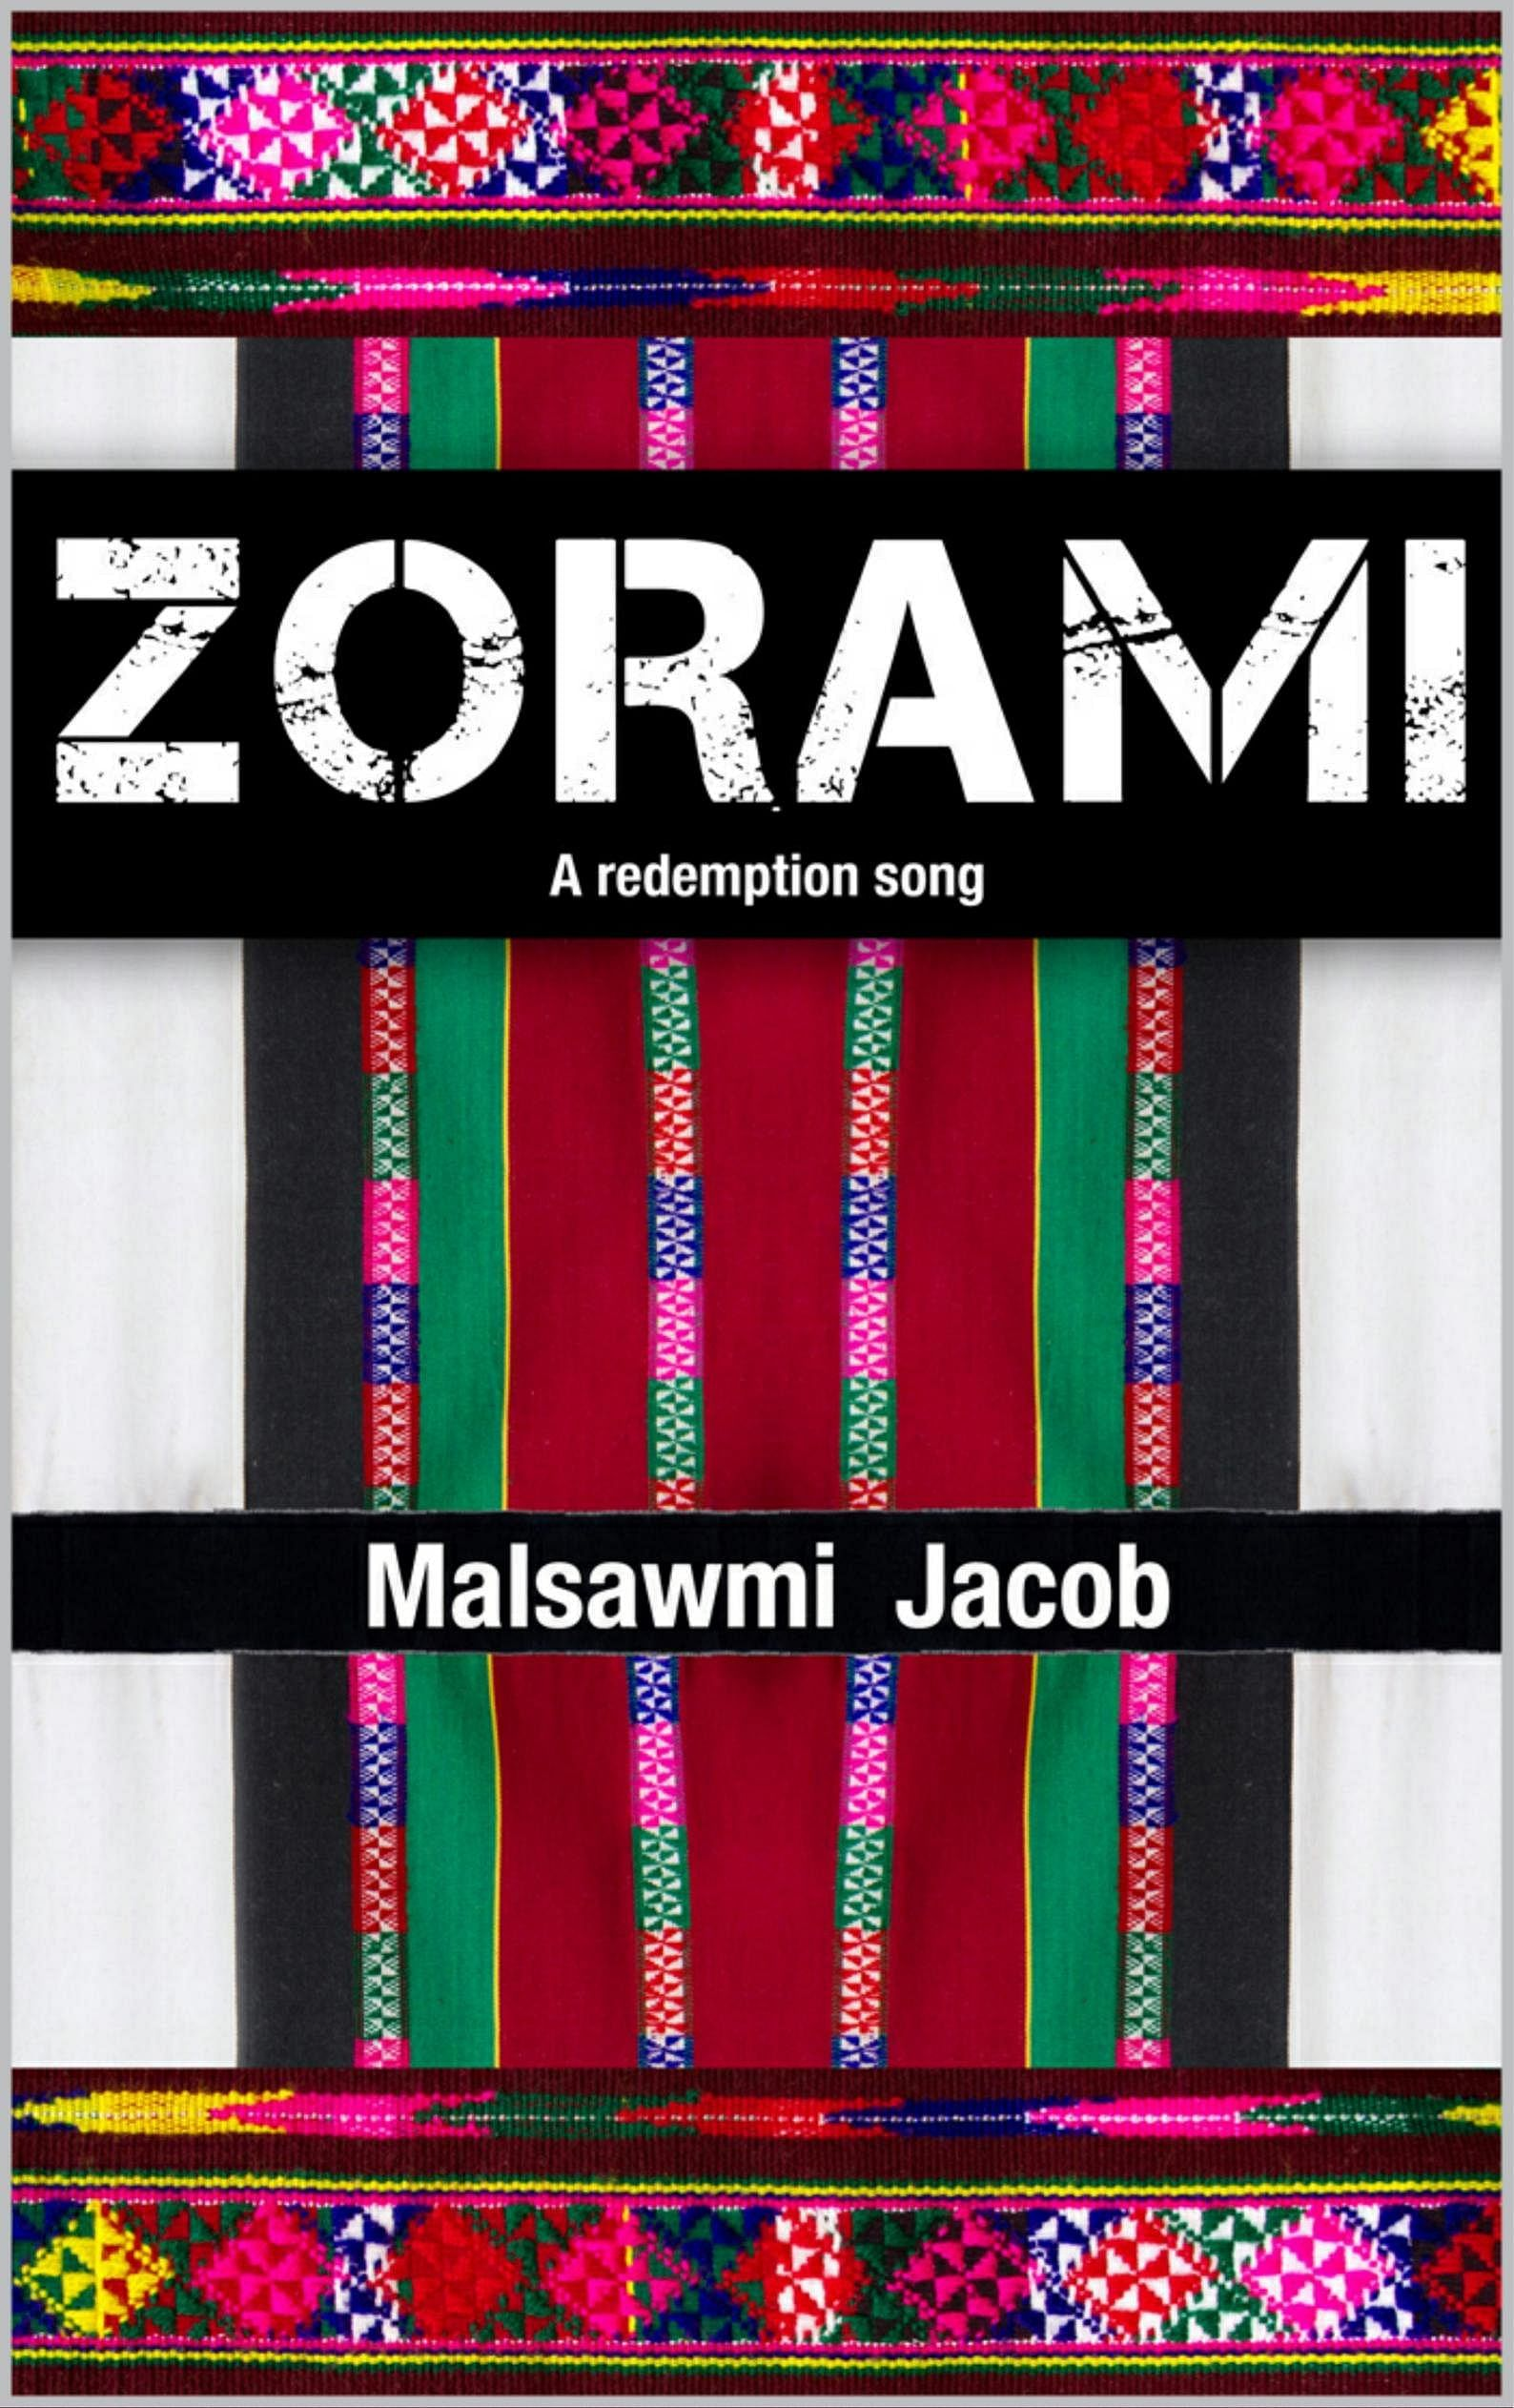 'Zorami', the first ever novel written by a Mizo writer in English, draws on the Insurgency years of the Sixties in Mizoram to tell the coming of age story of Zorami, a young woman caught in conflict.